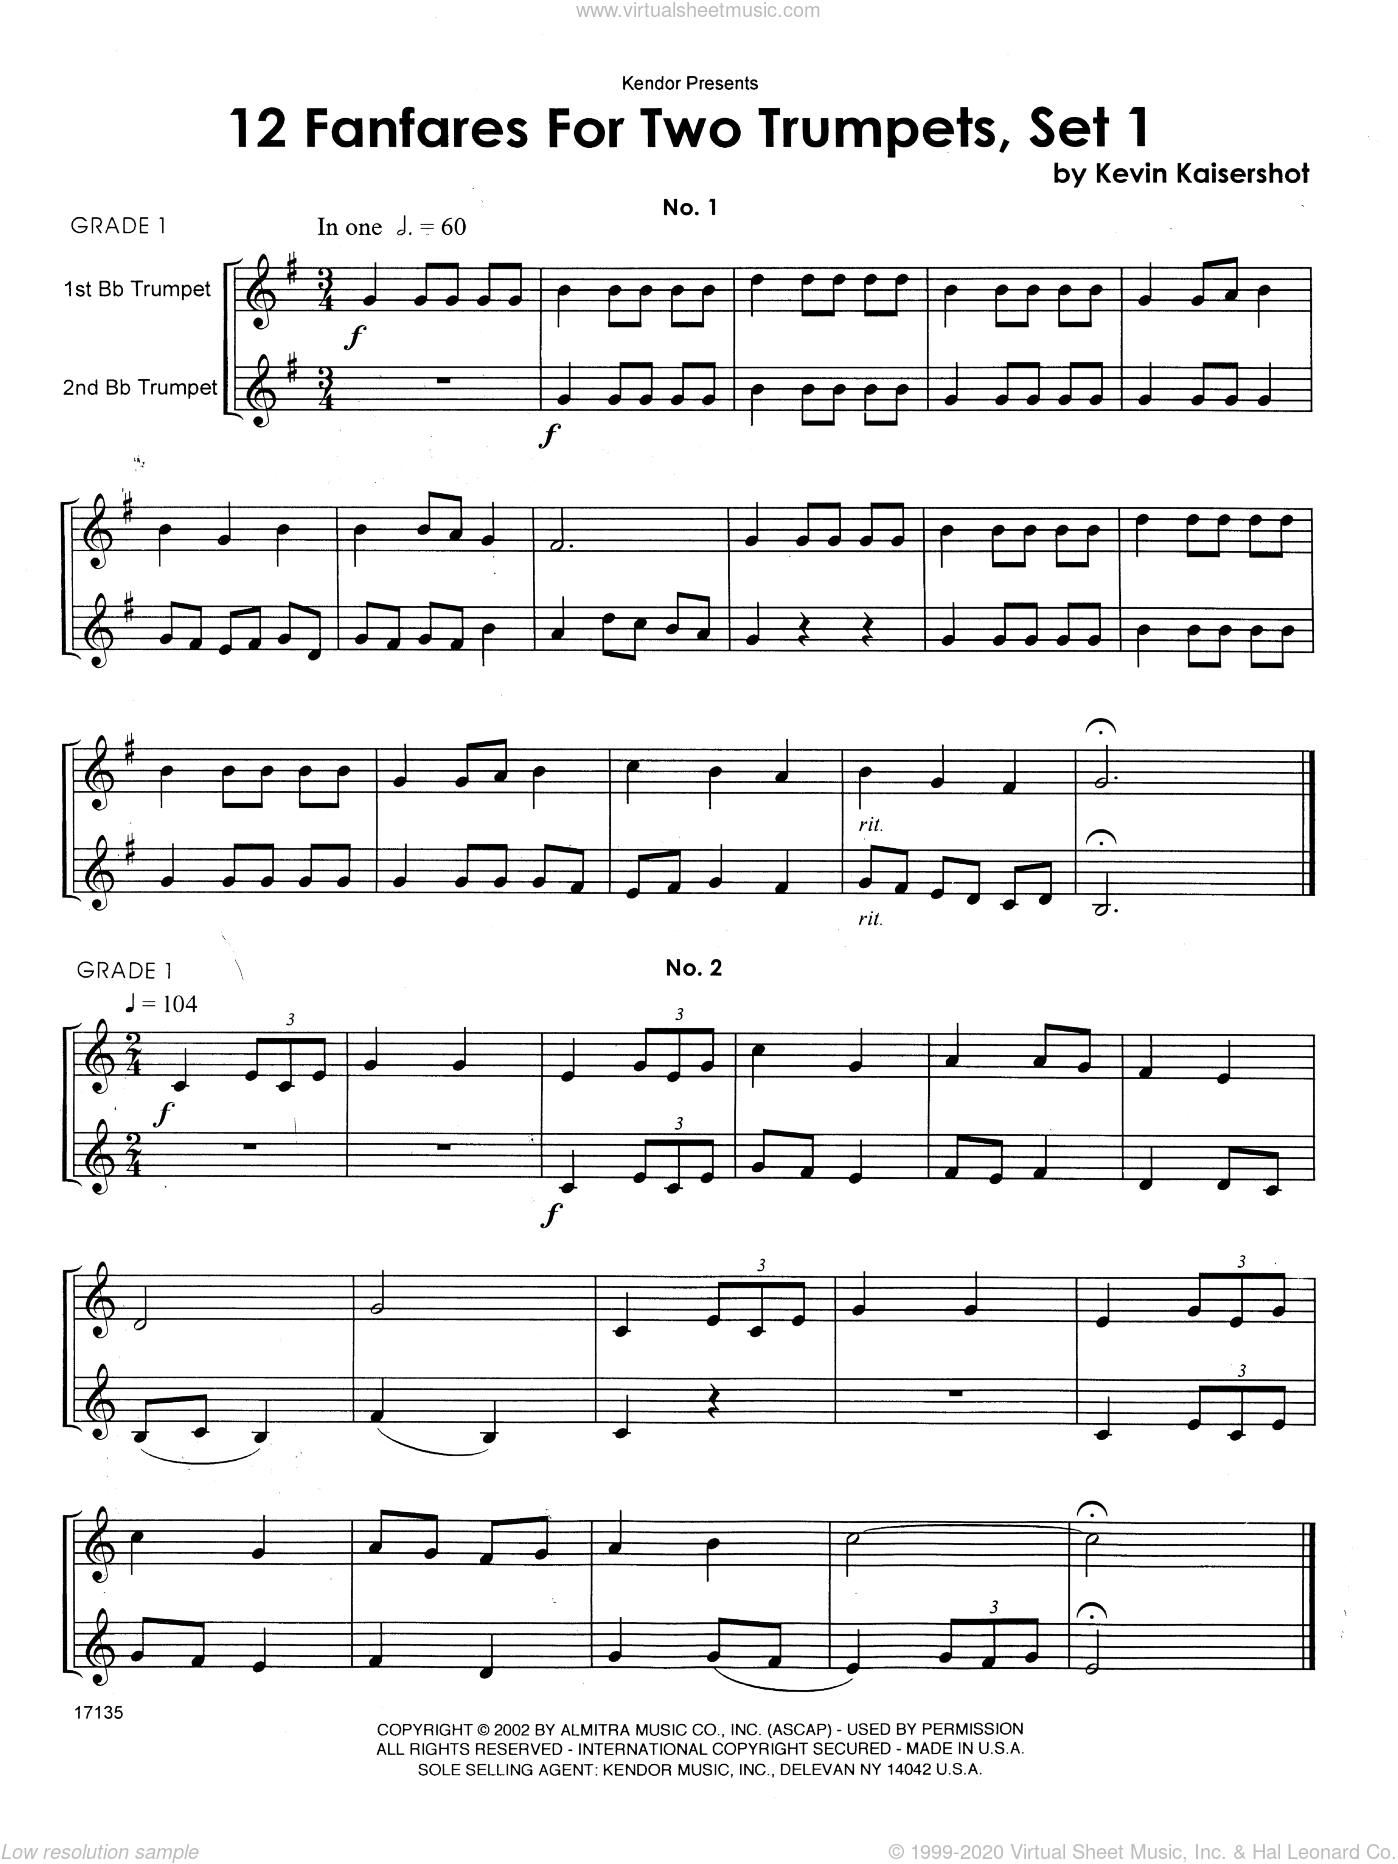 12 Fanfares For Two Trumpets, Set 1 sheet music for two trumpets by Kaisershot. Score Image Preview.